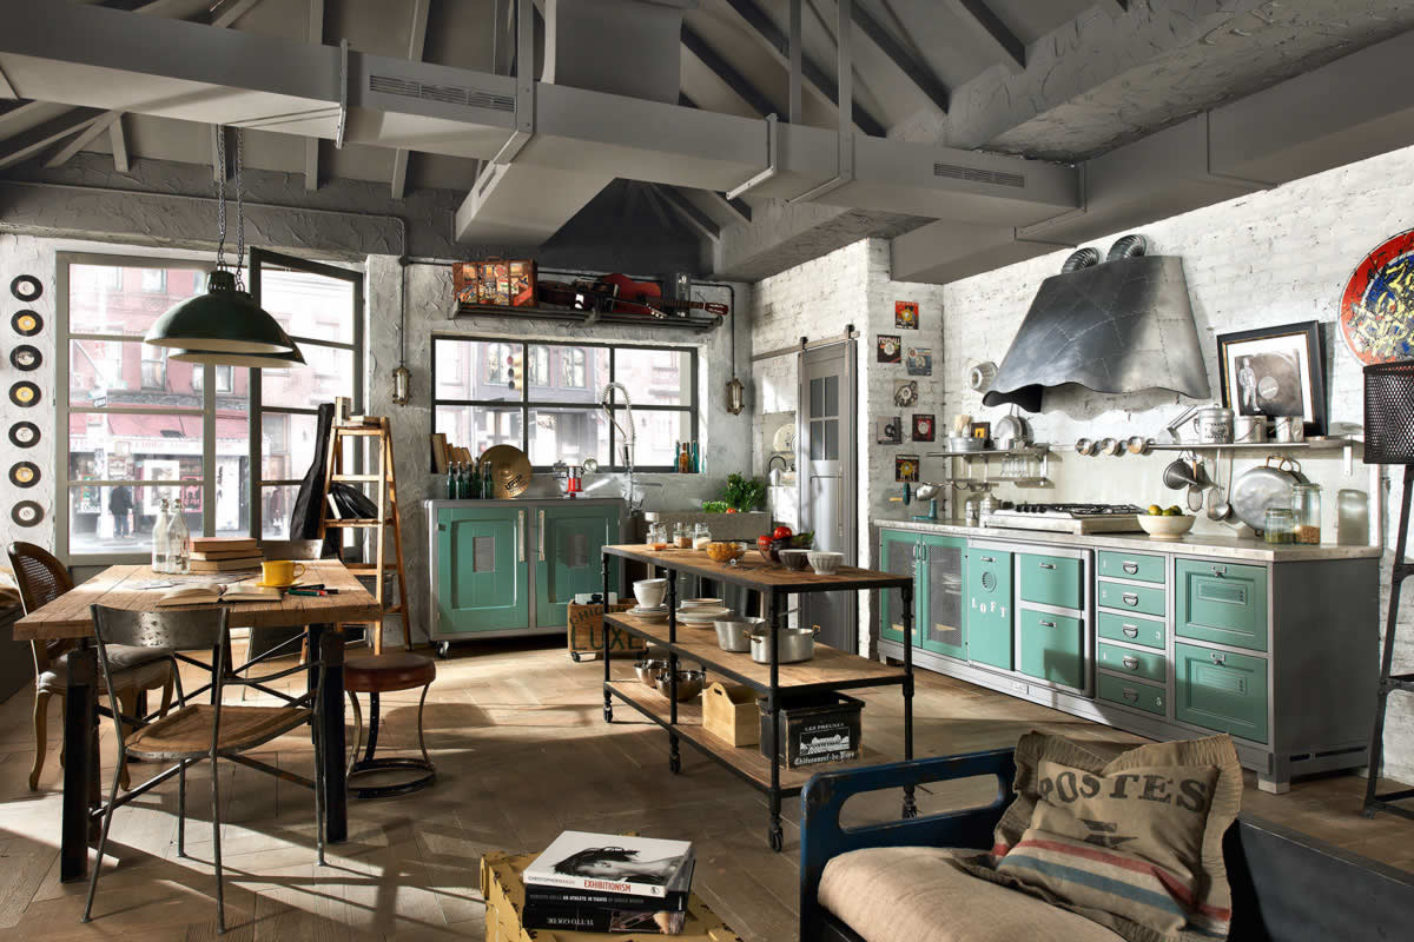 Large industrial kitchen style